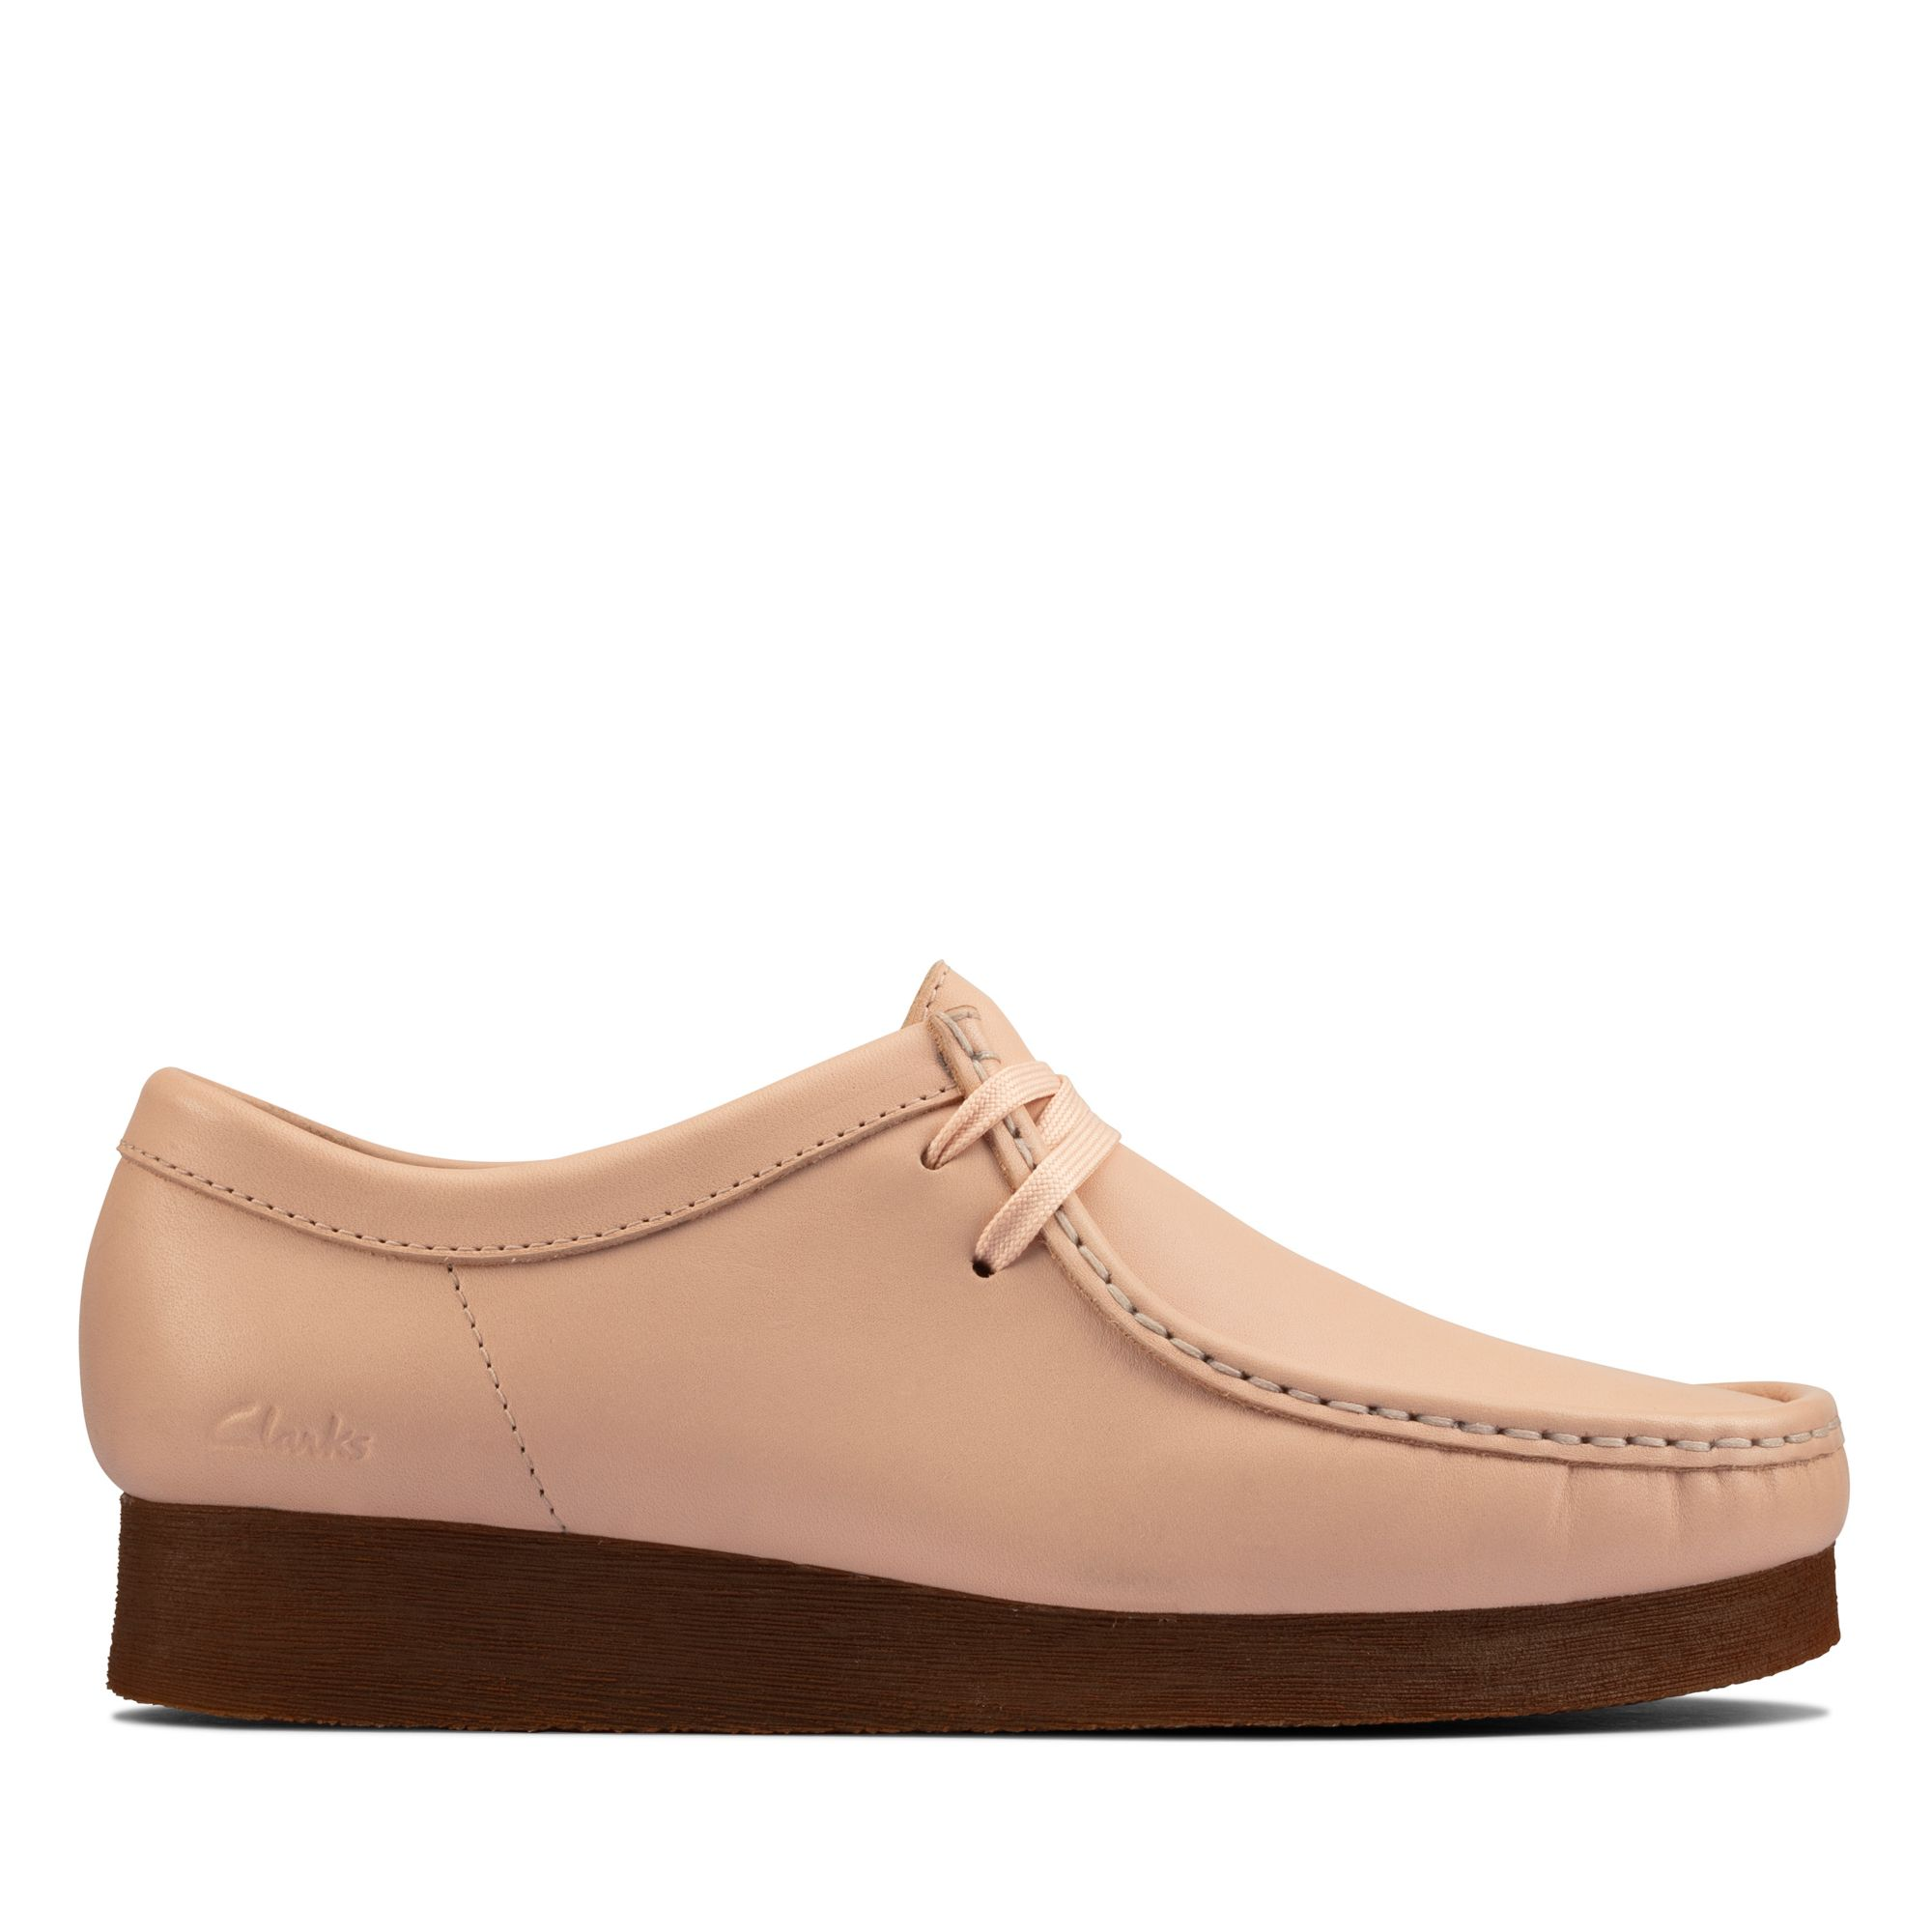 Clarks Wallabee 2 – Leather